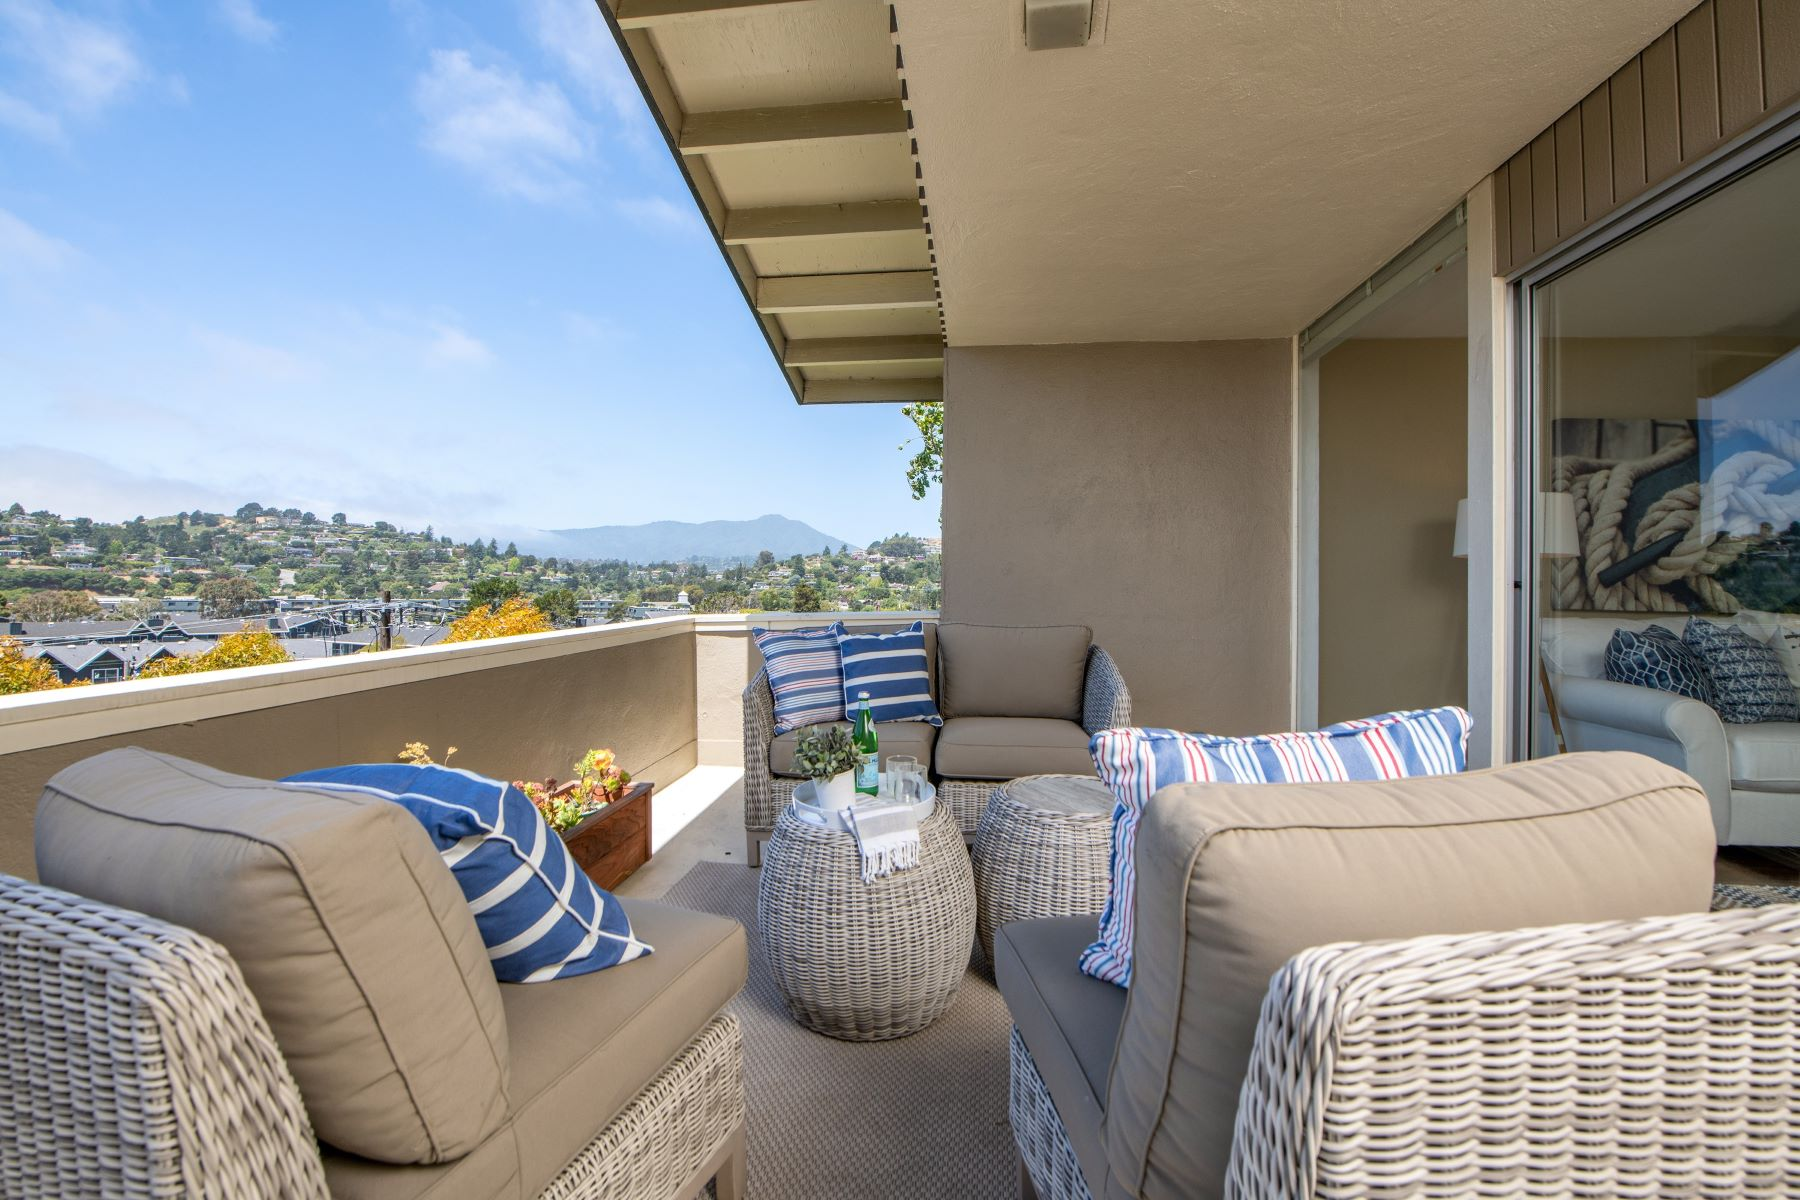 Condominiums for Sale at Cool, Convenient and Comfortable 395 Cecilia Way, #91, Tiburon, California 94920 United States